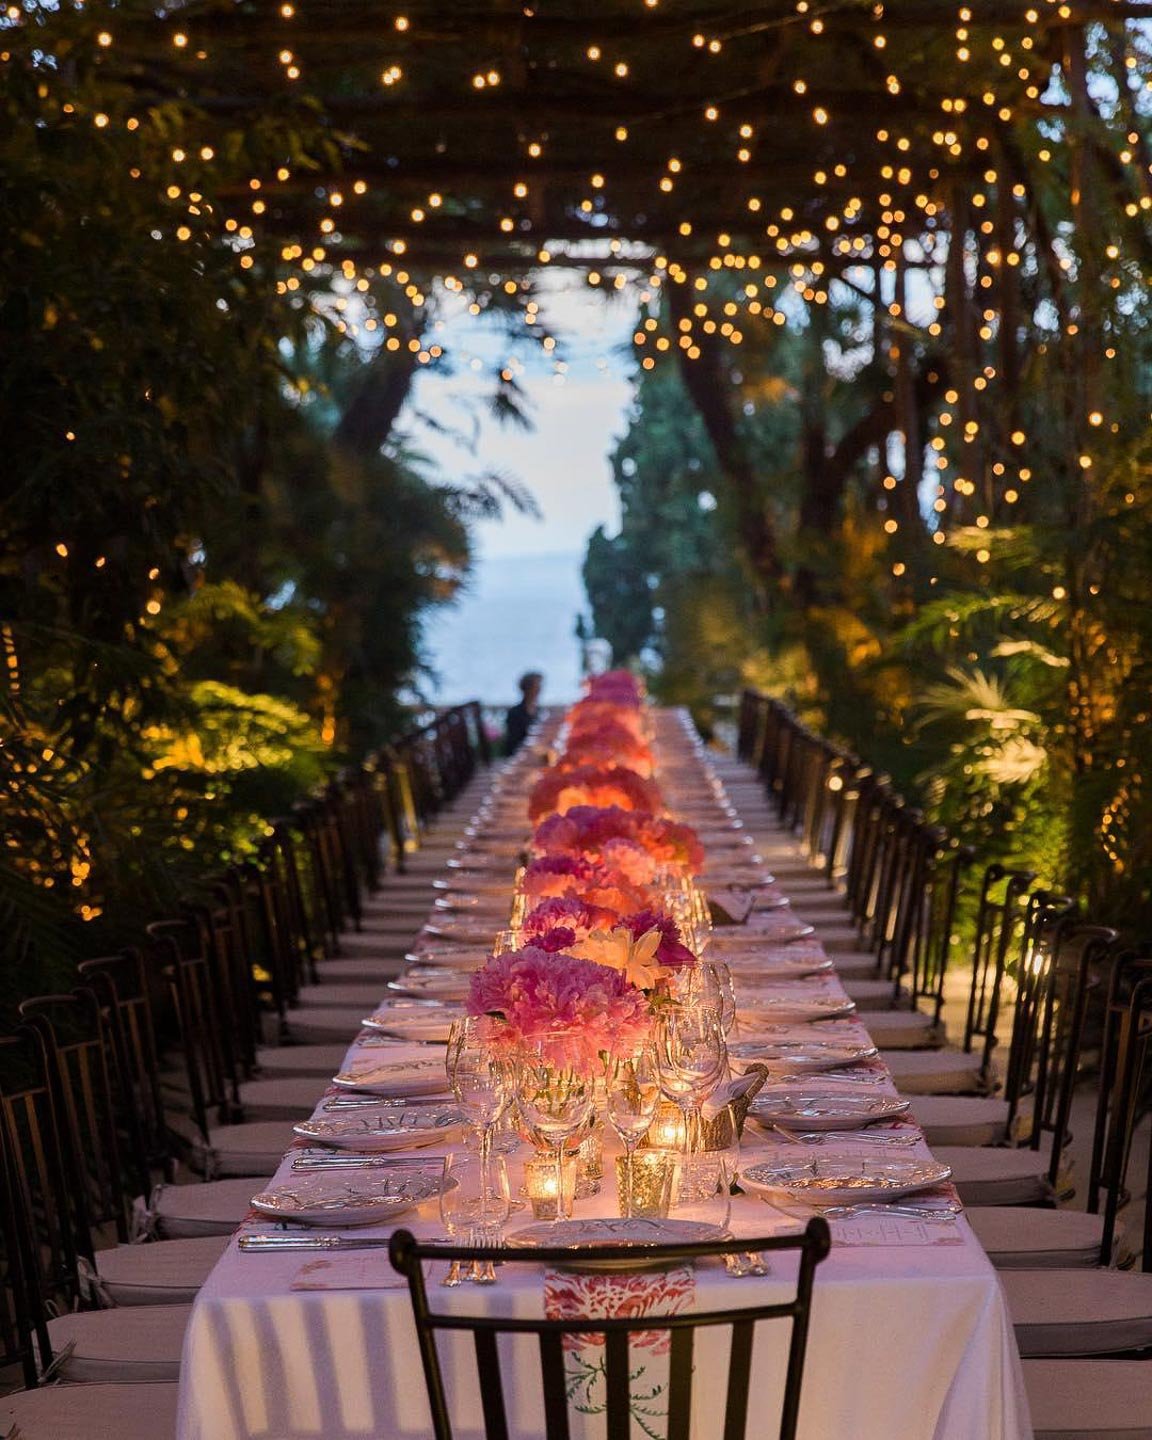 Villa asto luxury event dinner alfresco best Italian food wine beautiful table decor decoration lightning for destination intimate party wedding 1